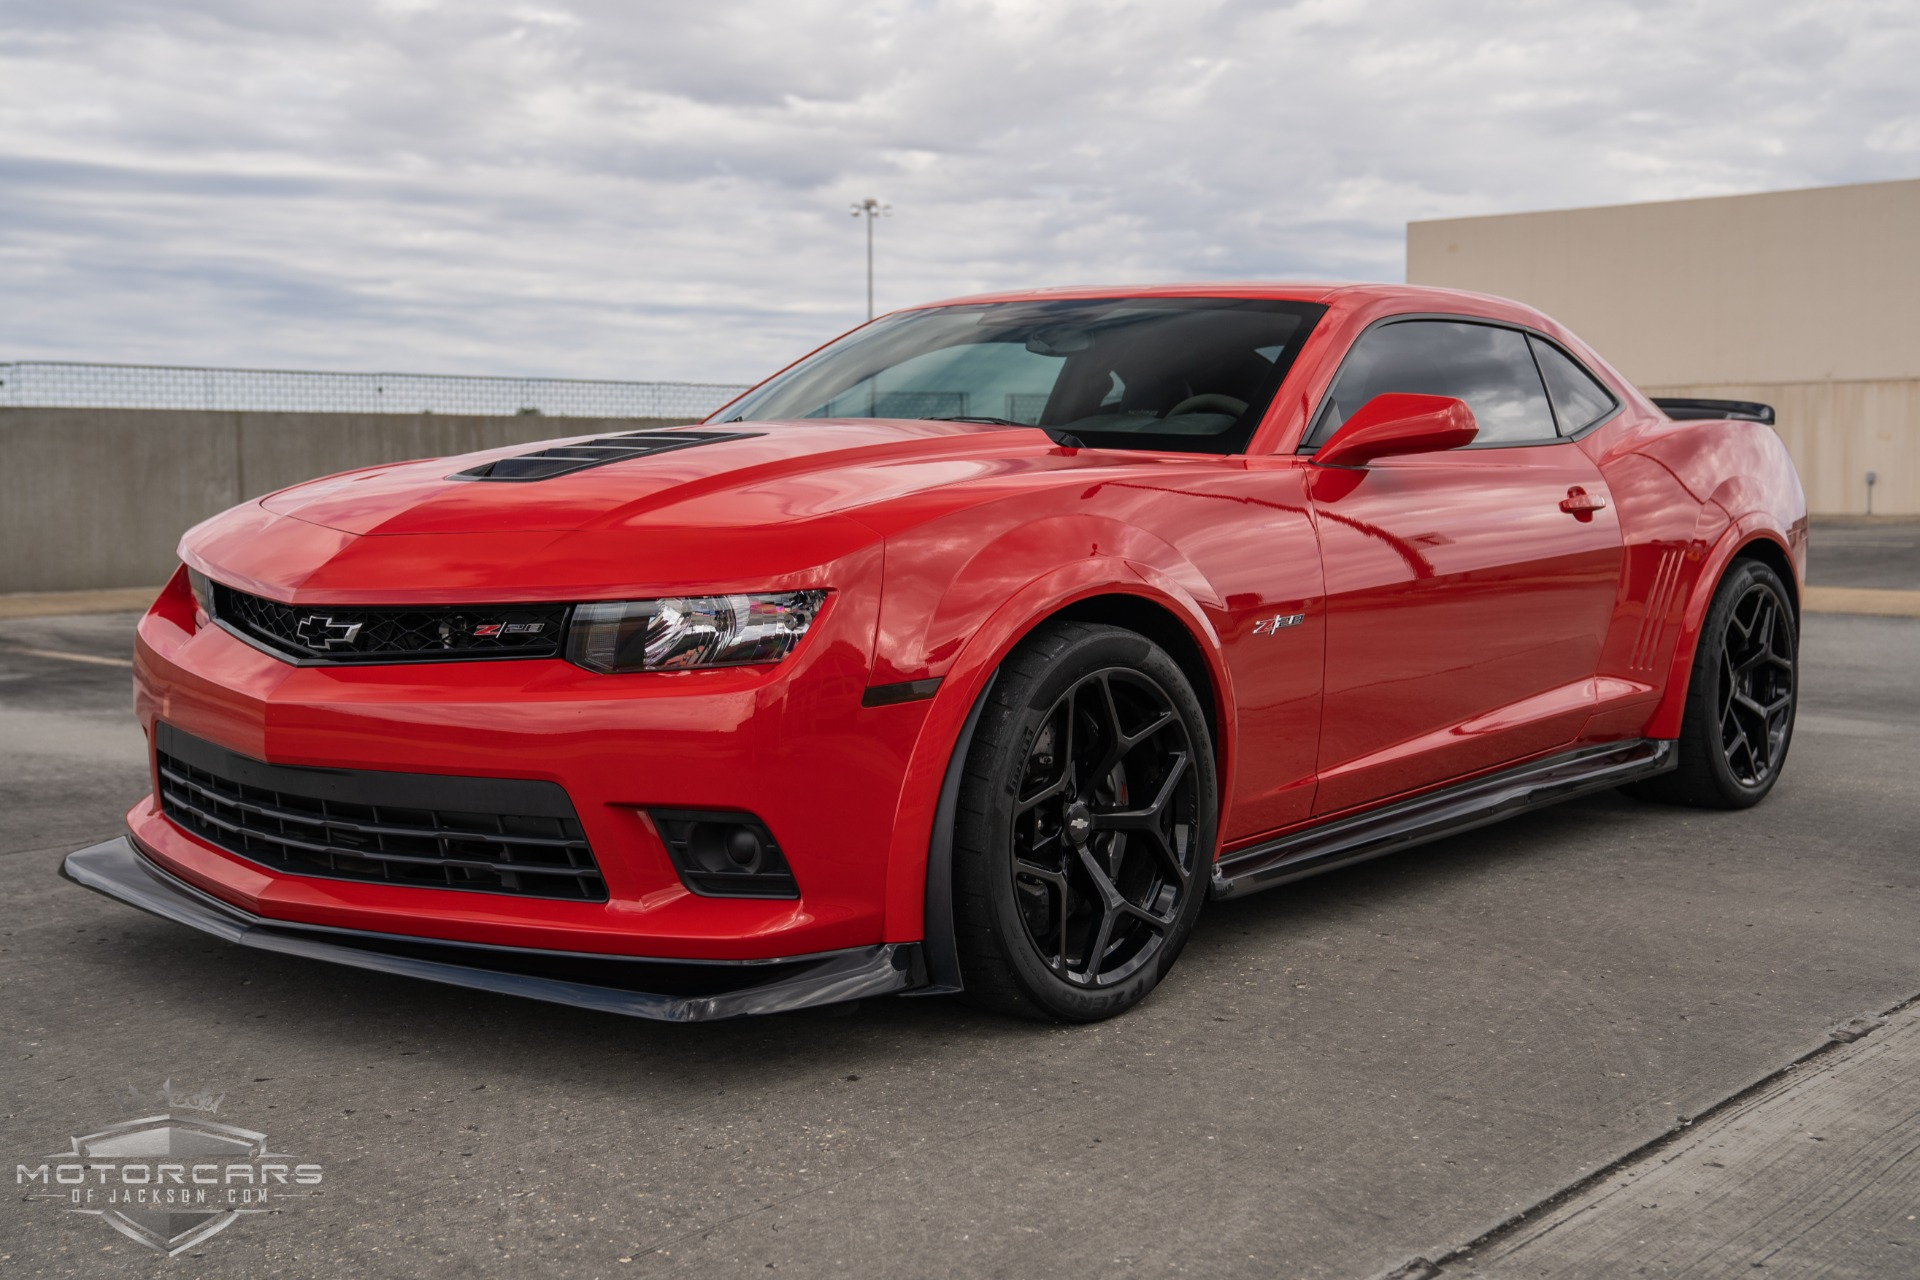 Used-2014-Chevrolet-Camaro-Z/28-for-sale-Jackson-MS